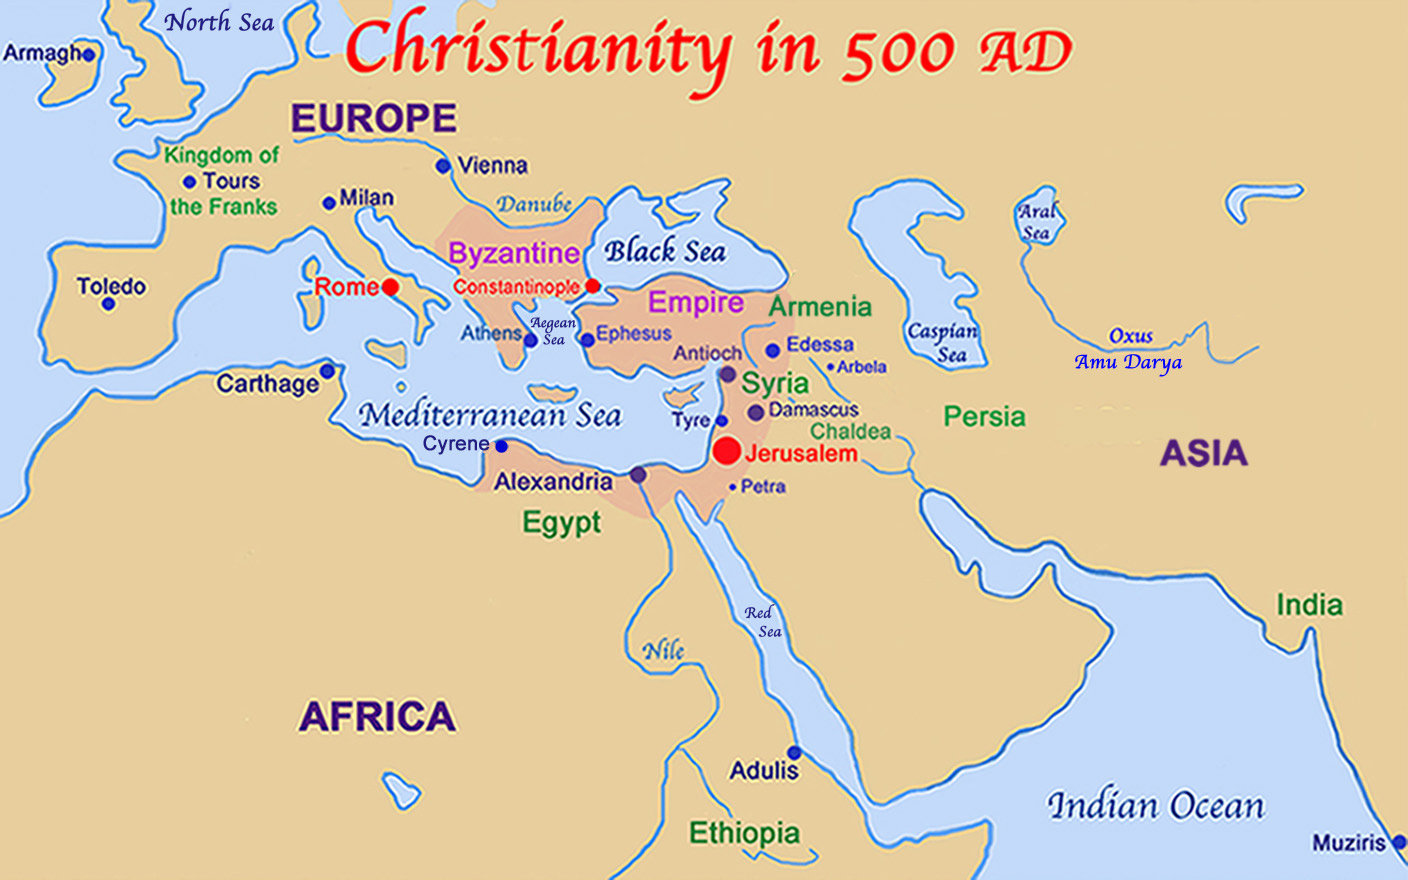 Christianity in 500 AD.